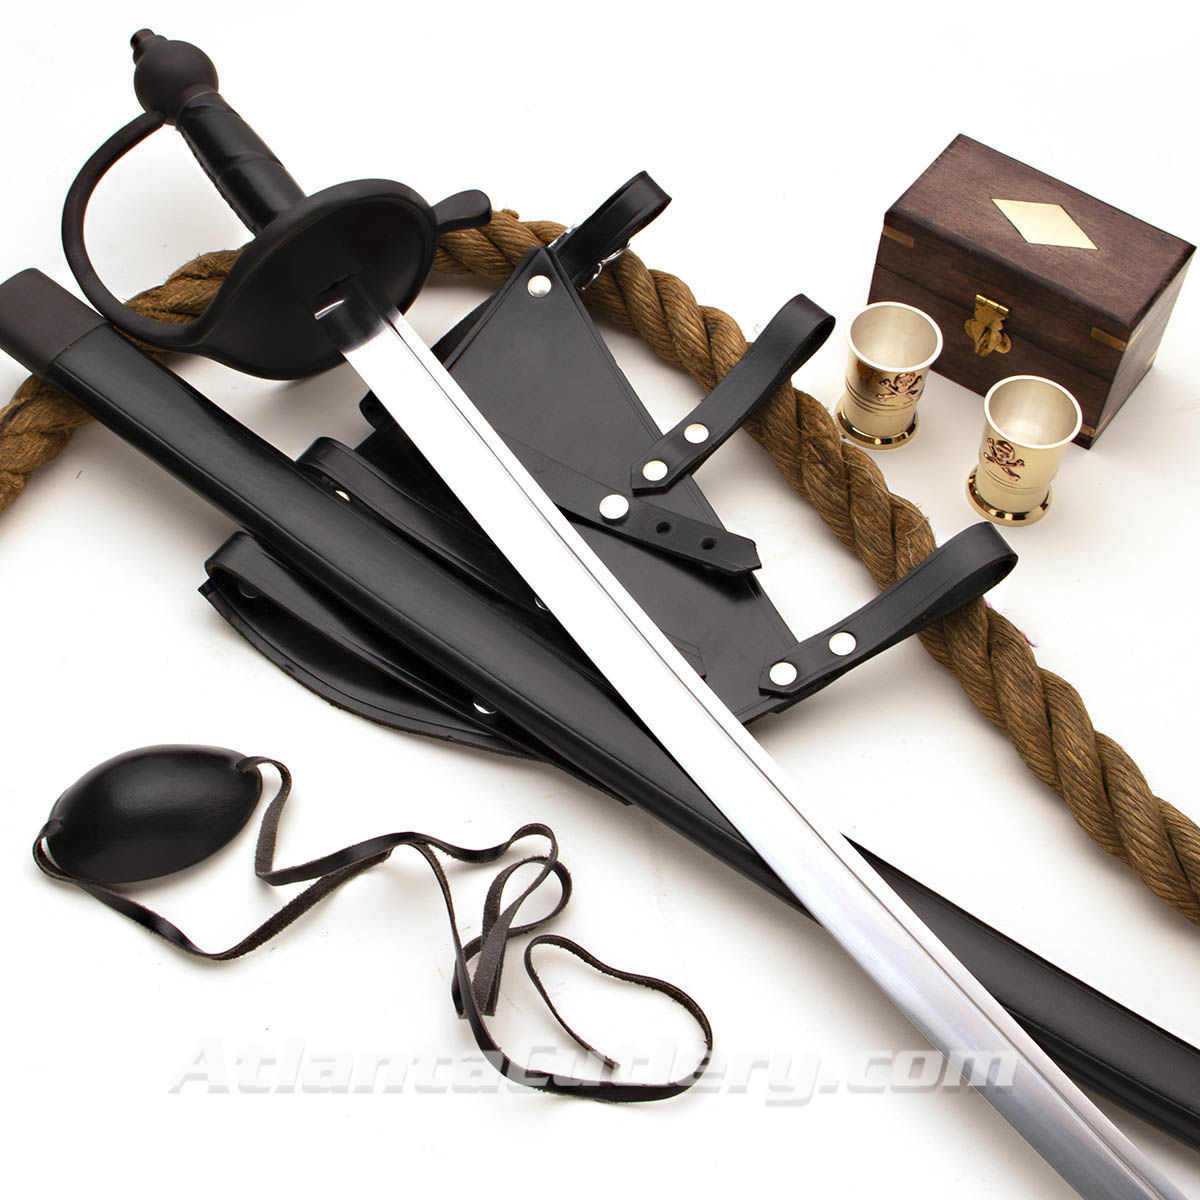 The Swashbuckler Box with Sword, Leather Frog, eye patch and set of shot glasses